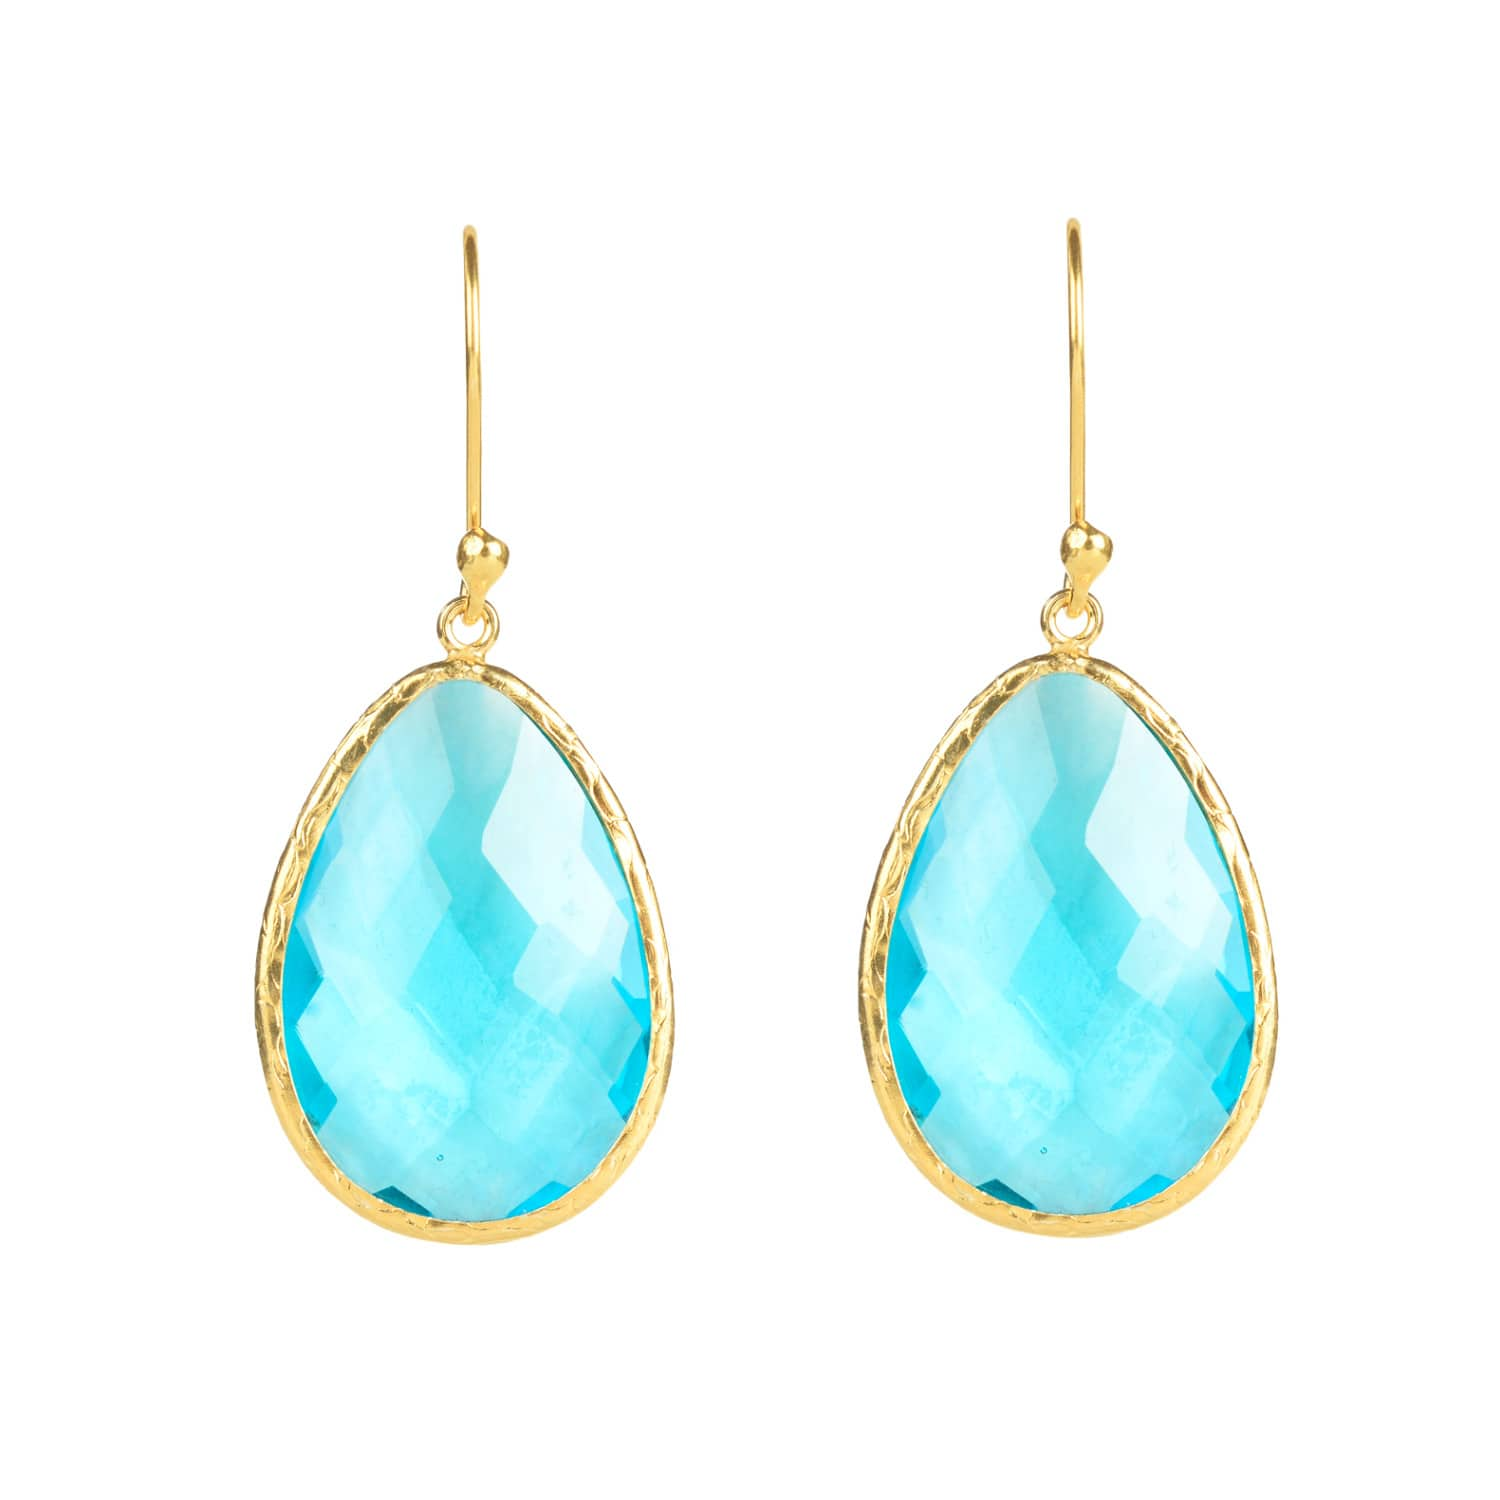 Latelita London Silver Single Drop Earring Blue Topaz 5eWfUJYYe